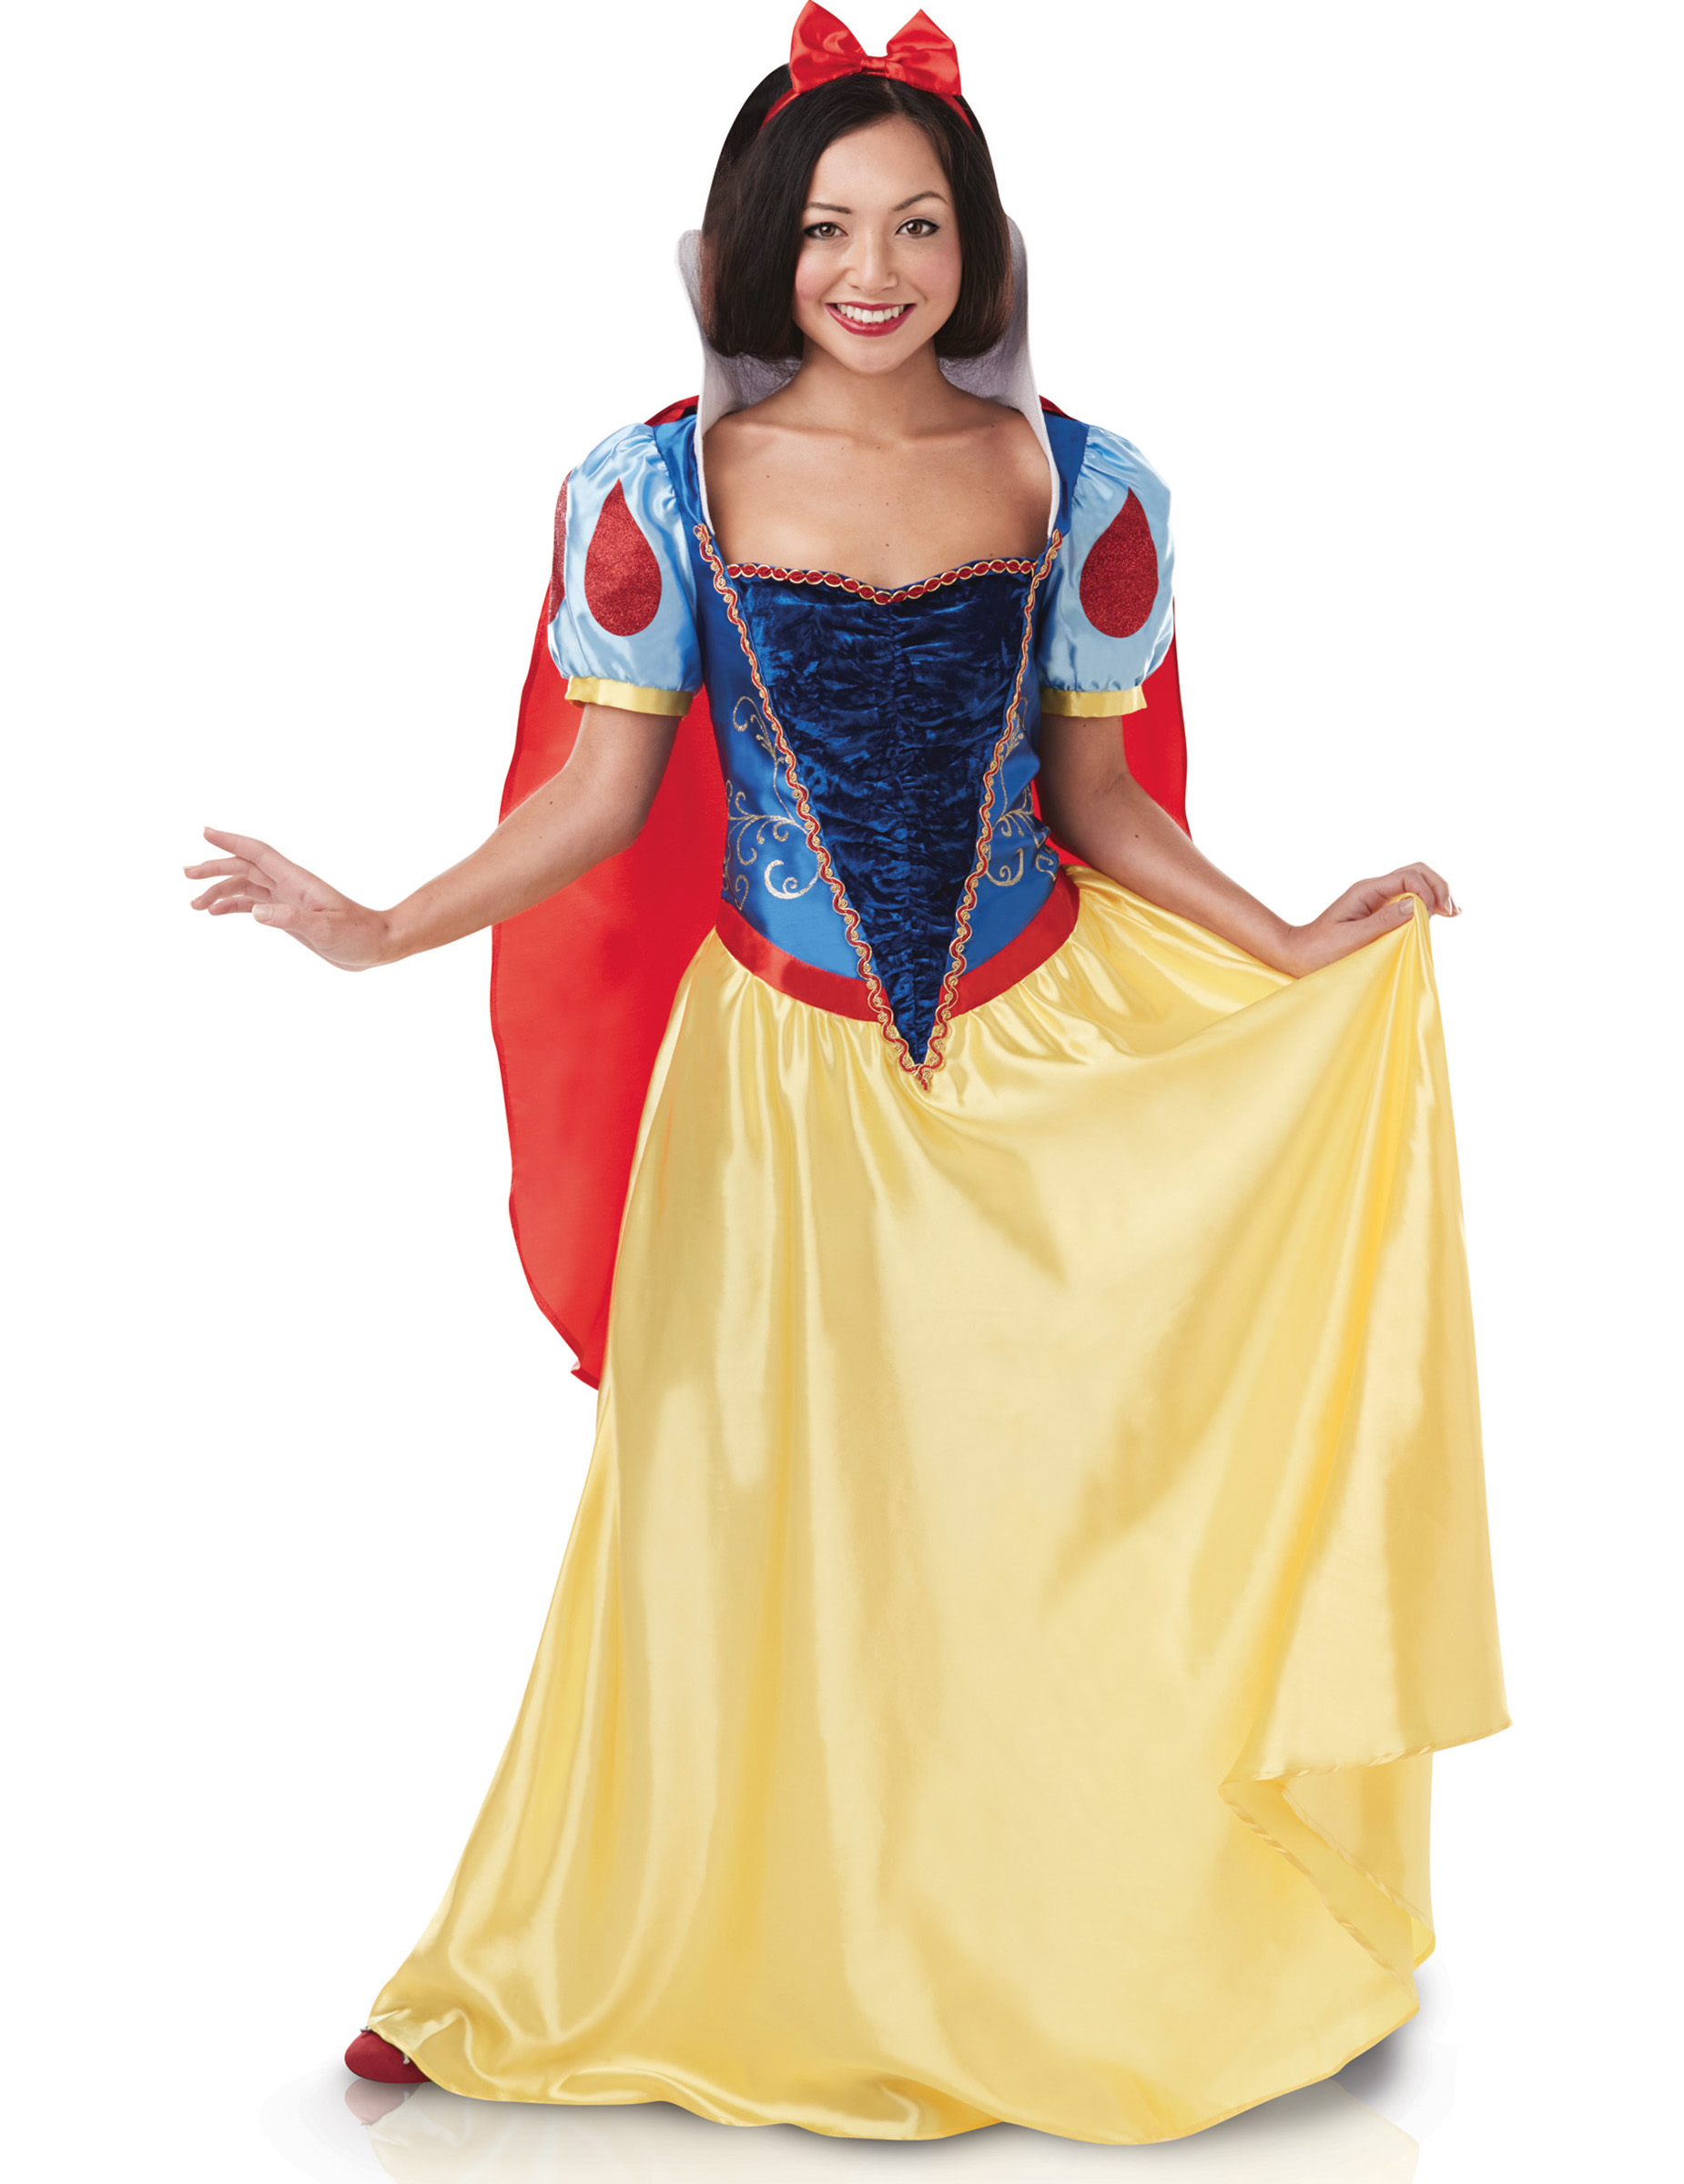 Adult Halloween costumes are so much fun! Homemade costumes for adults can be as creative, inexpensive, and original as kids costumes! So, if you're looking for unique adult Halloween costumes for men and women, then check out these easy halloween costumes to dress up as celebrities, a fairy.